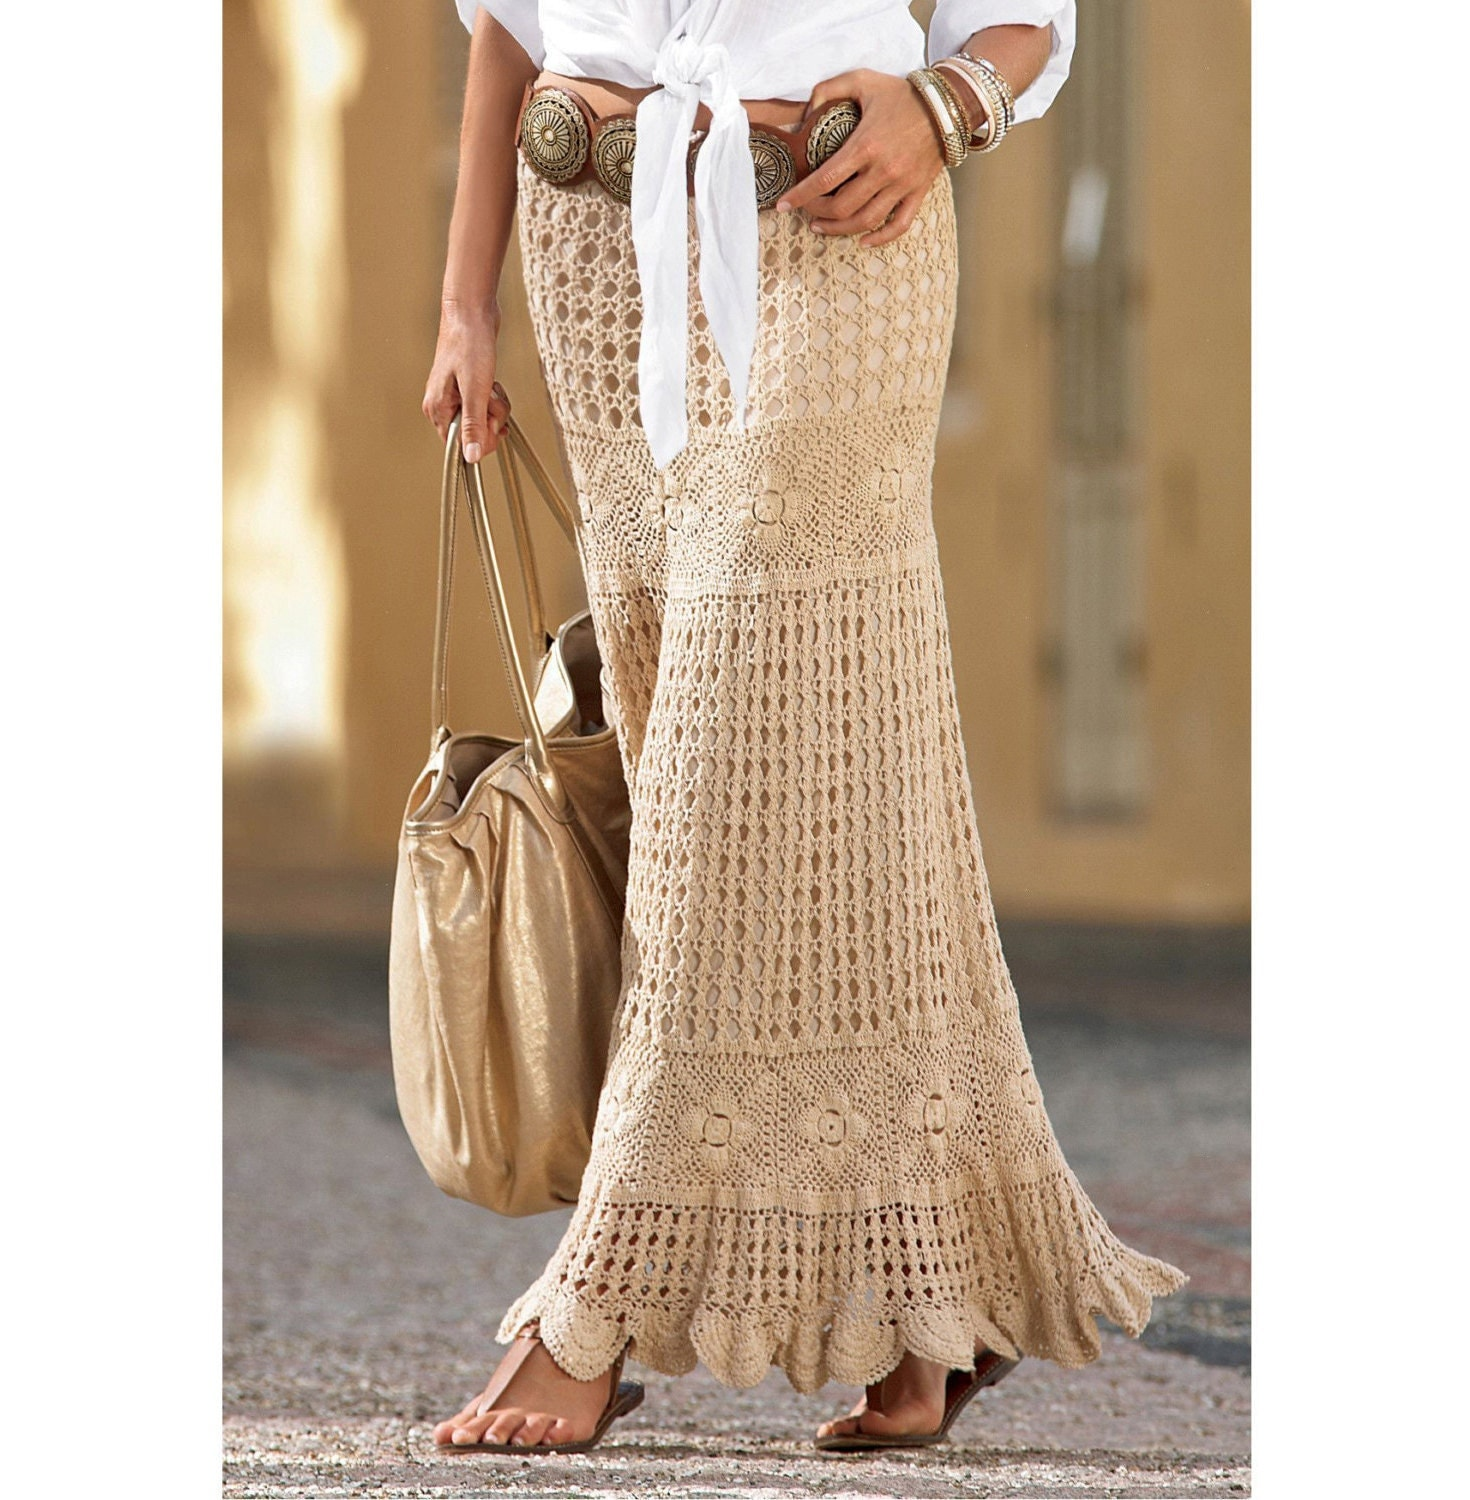 Crochet Maxi Skirt Pattern Crochet Tutorial In English For